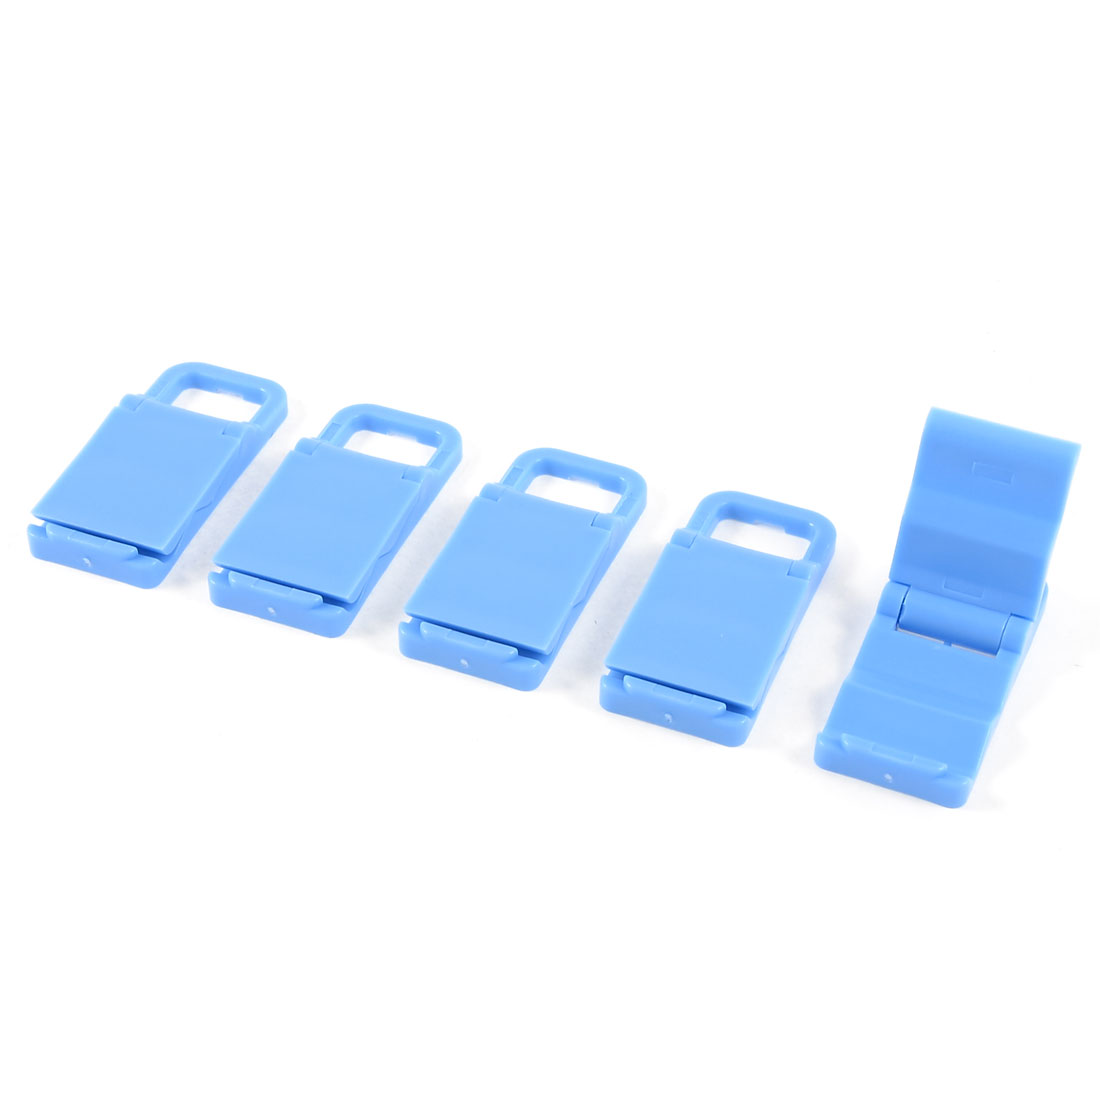 5 Pcs Sky Blue Plastic Foldable Stand Holder for MP4 Mobile Phone